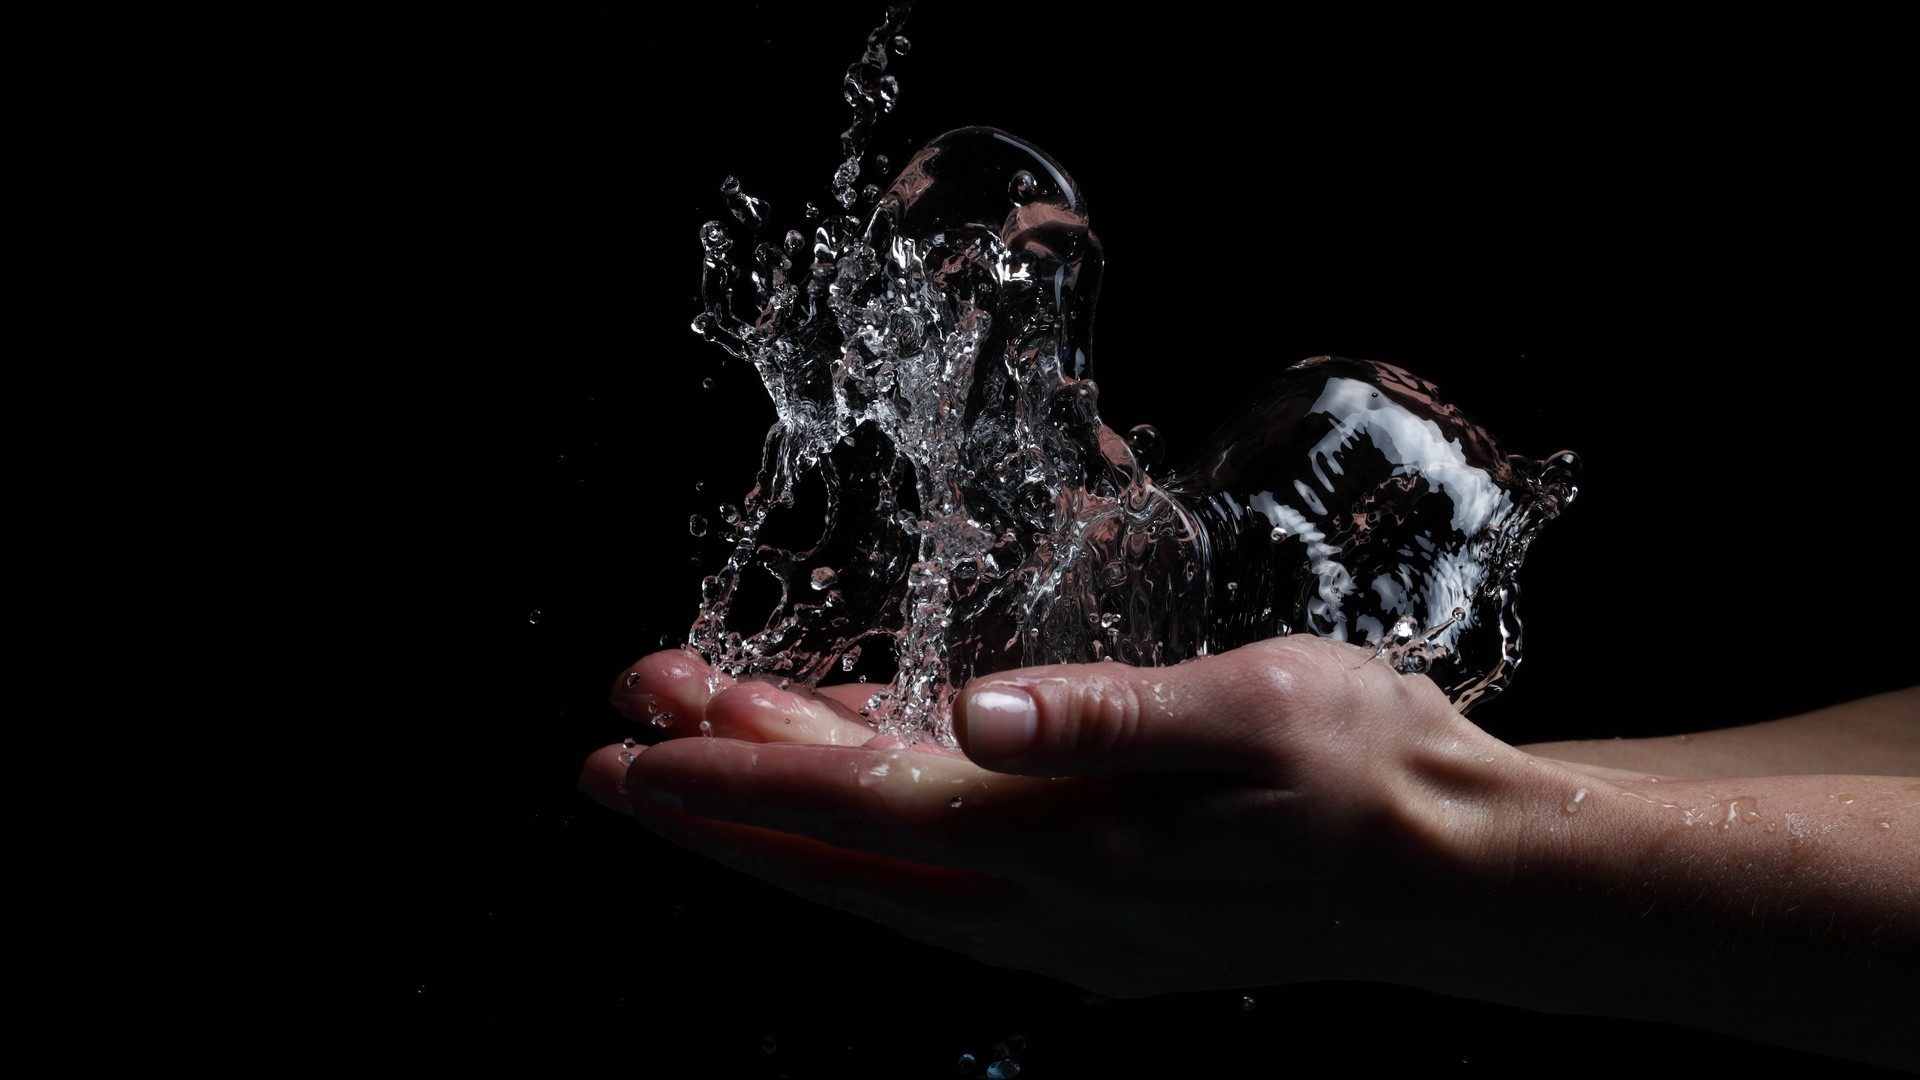 Water Abstract Wallpaper 1920x1080 Water Abstract Black Background 1920x1080